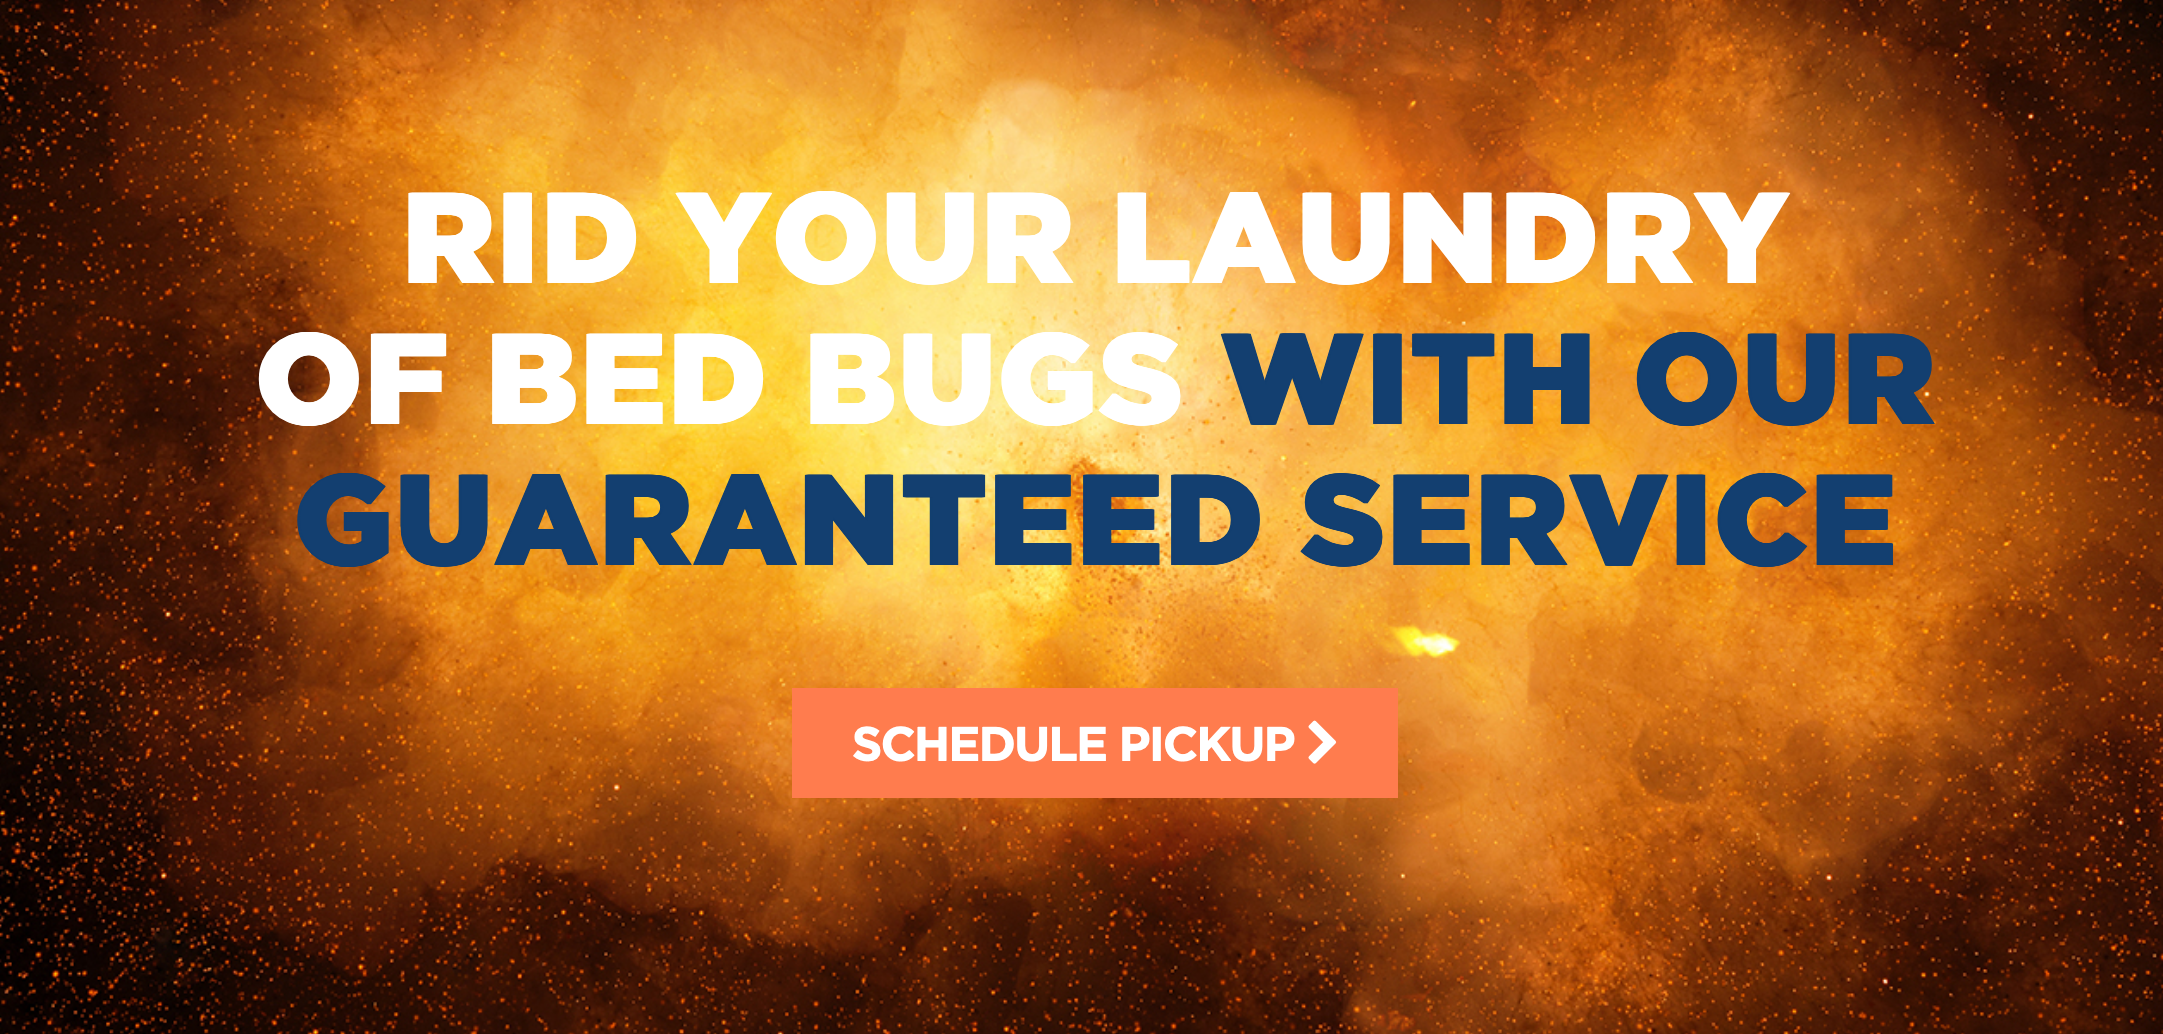 bed bug laundry service